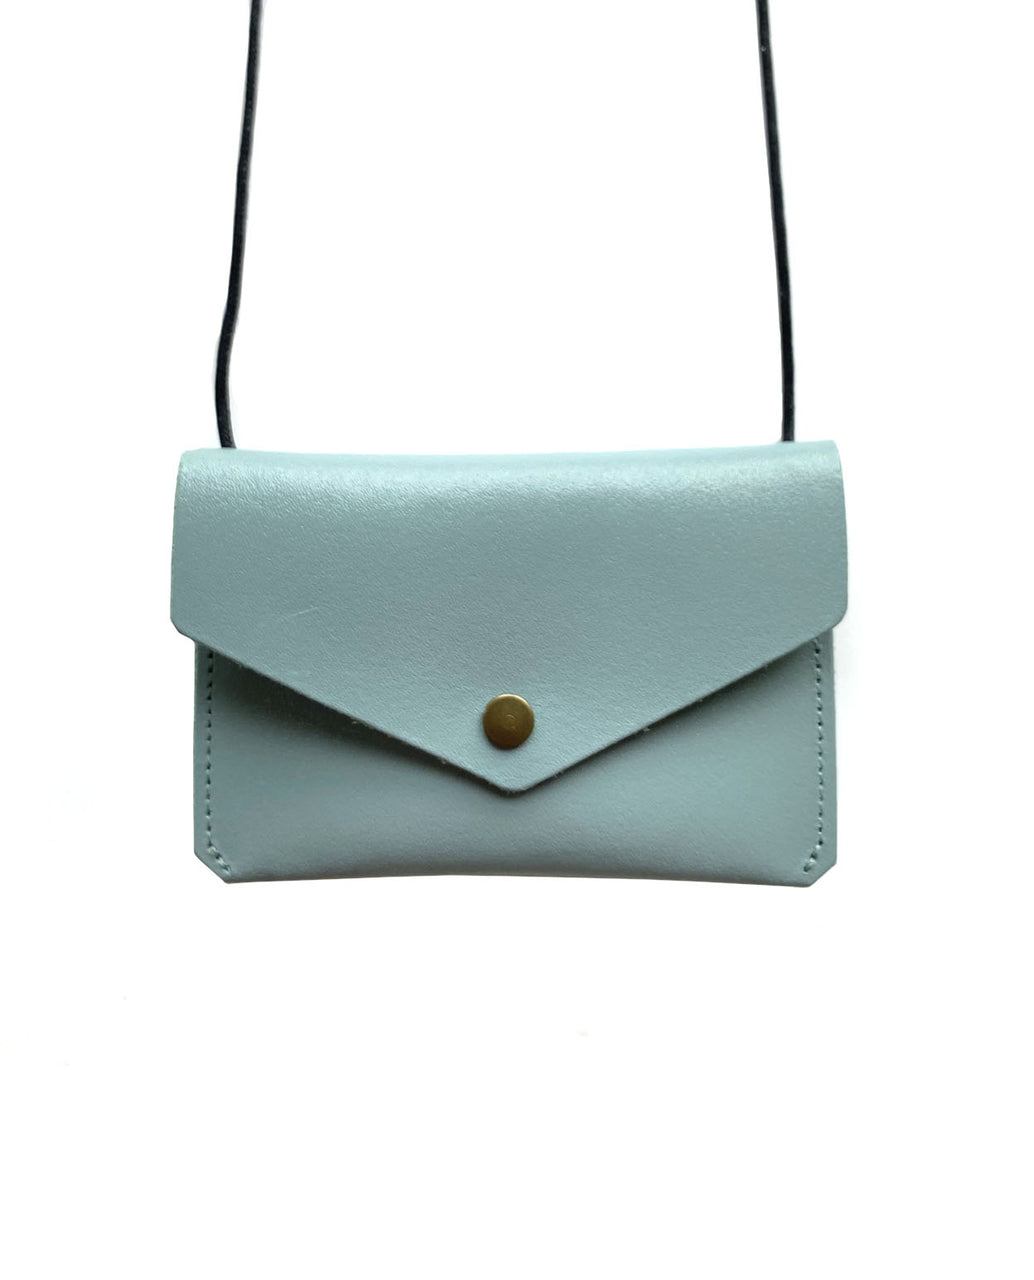 Leather envelope purse - duck egg blue